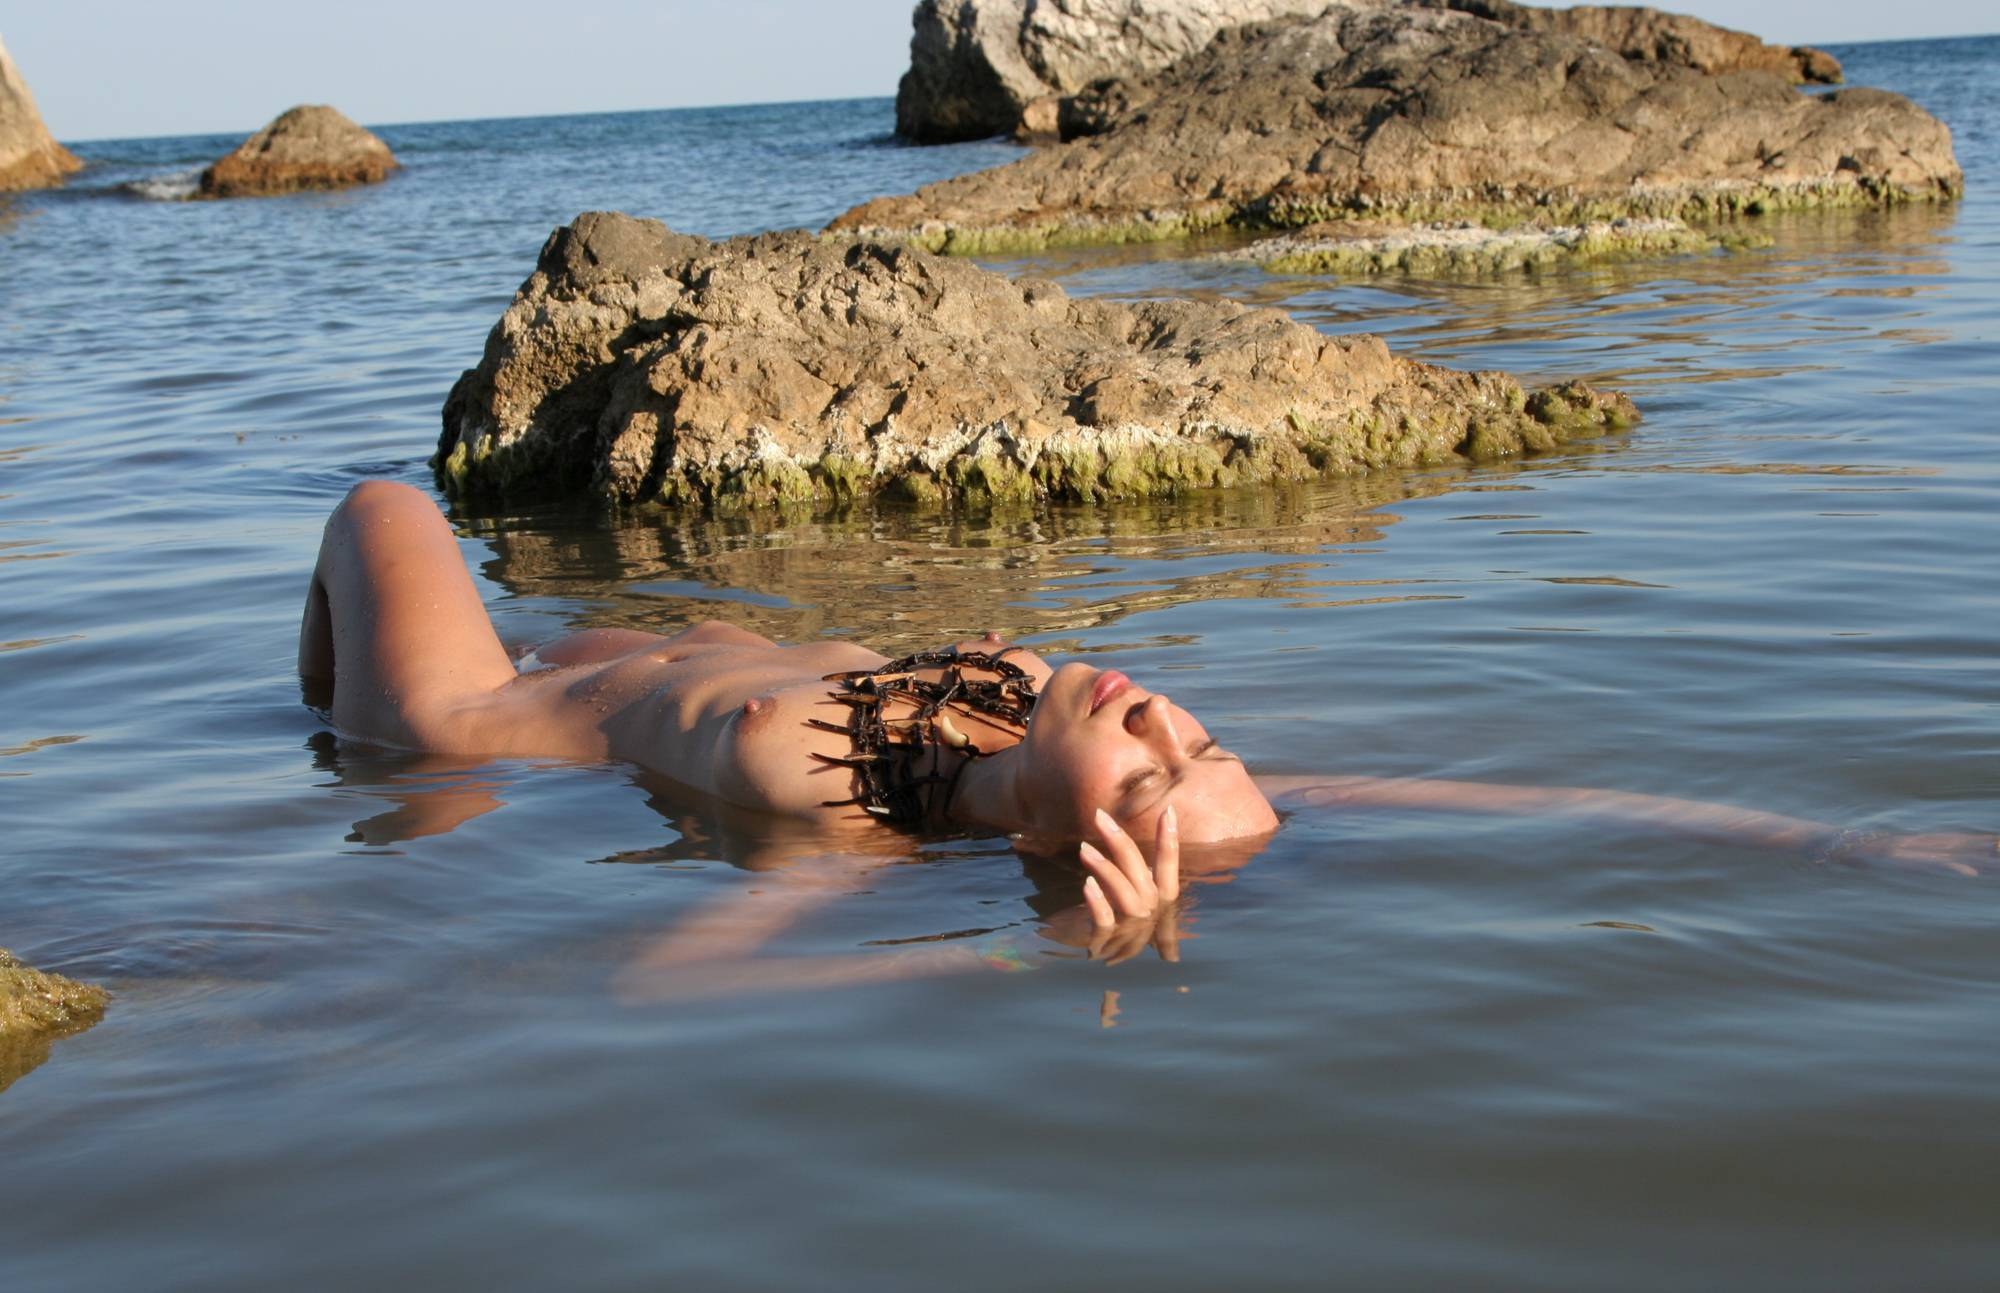 Purenudism Girl Emerges From Waters - 4